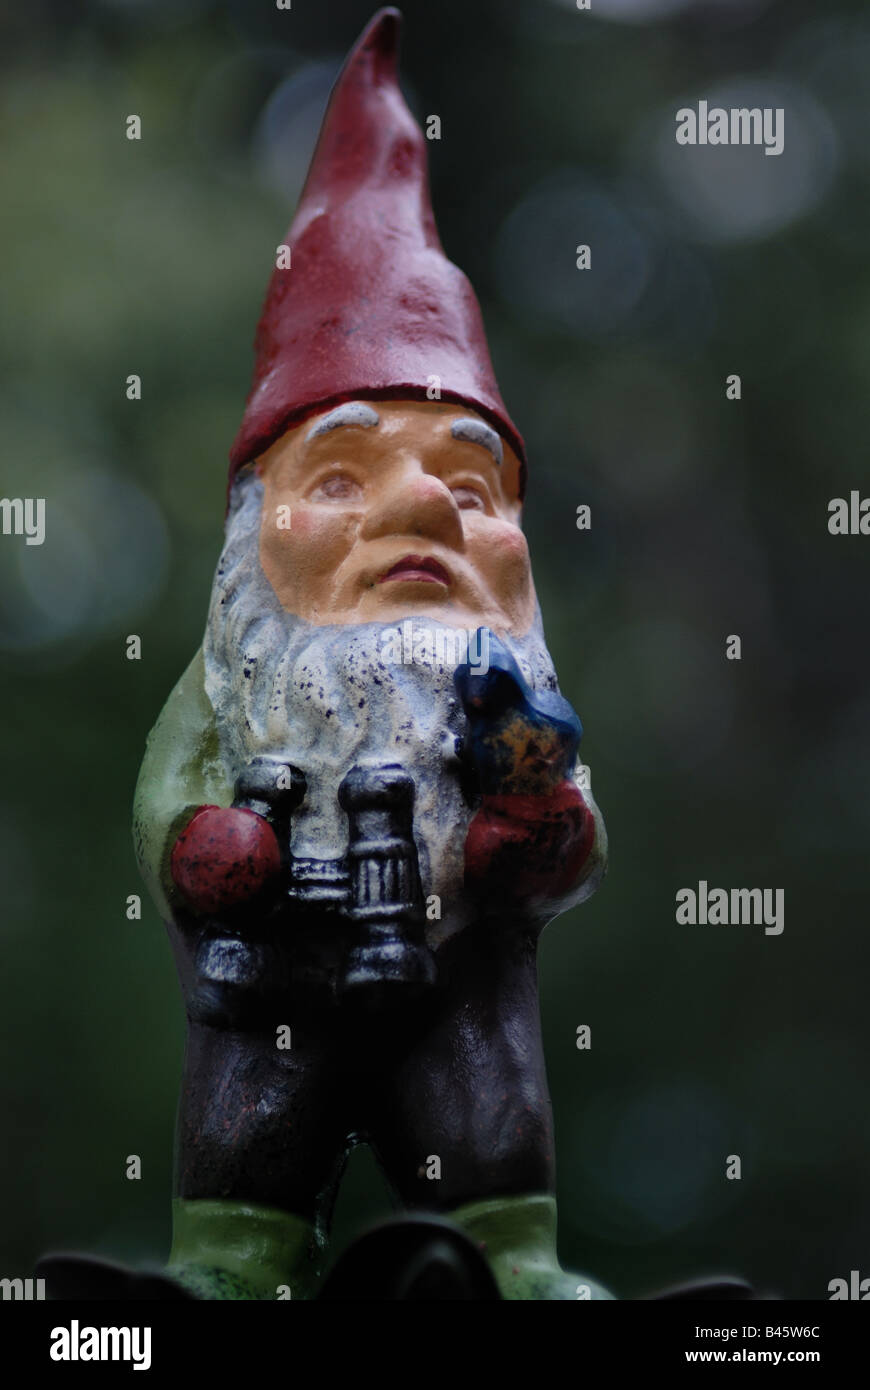 A portrait of a bearded garden gnome wearing a red pointy hat, holding binoculars and a bluebird. - Stock Image